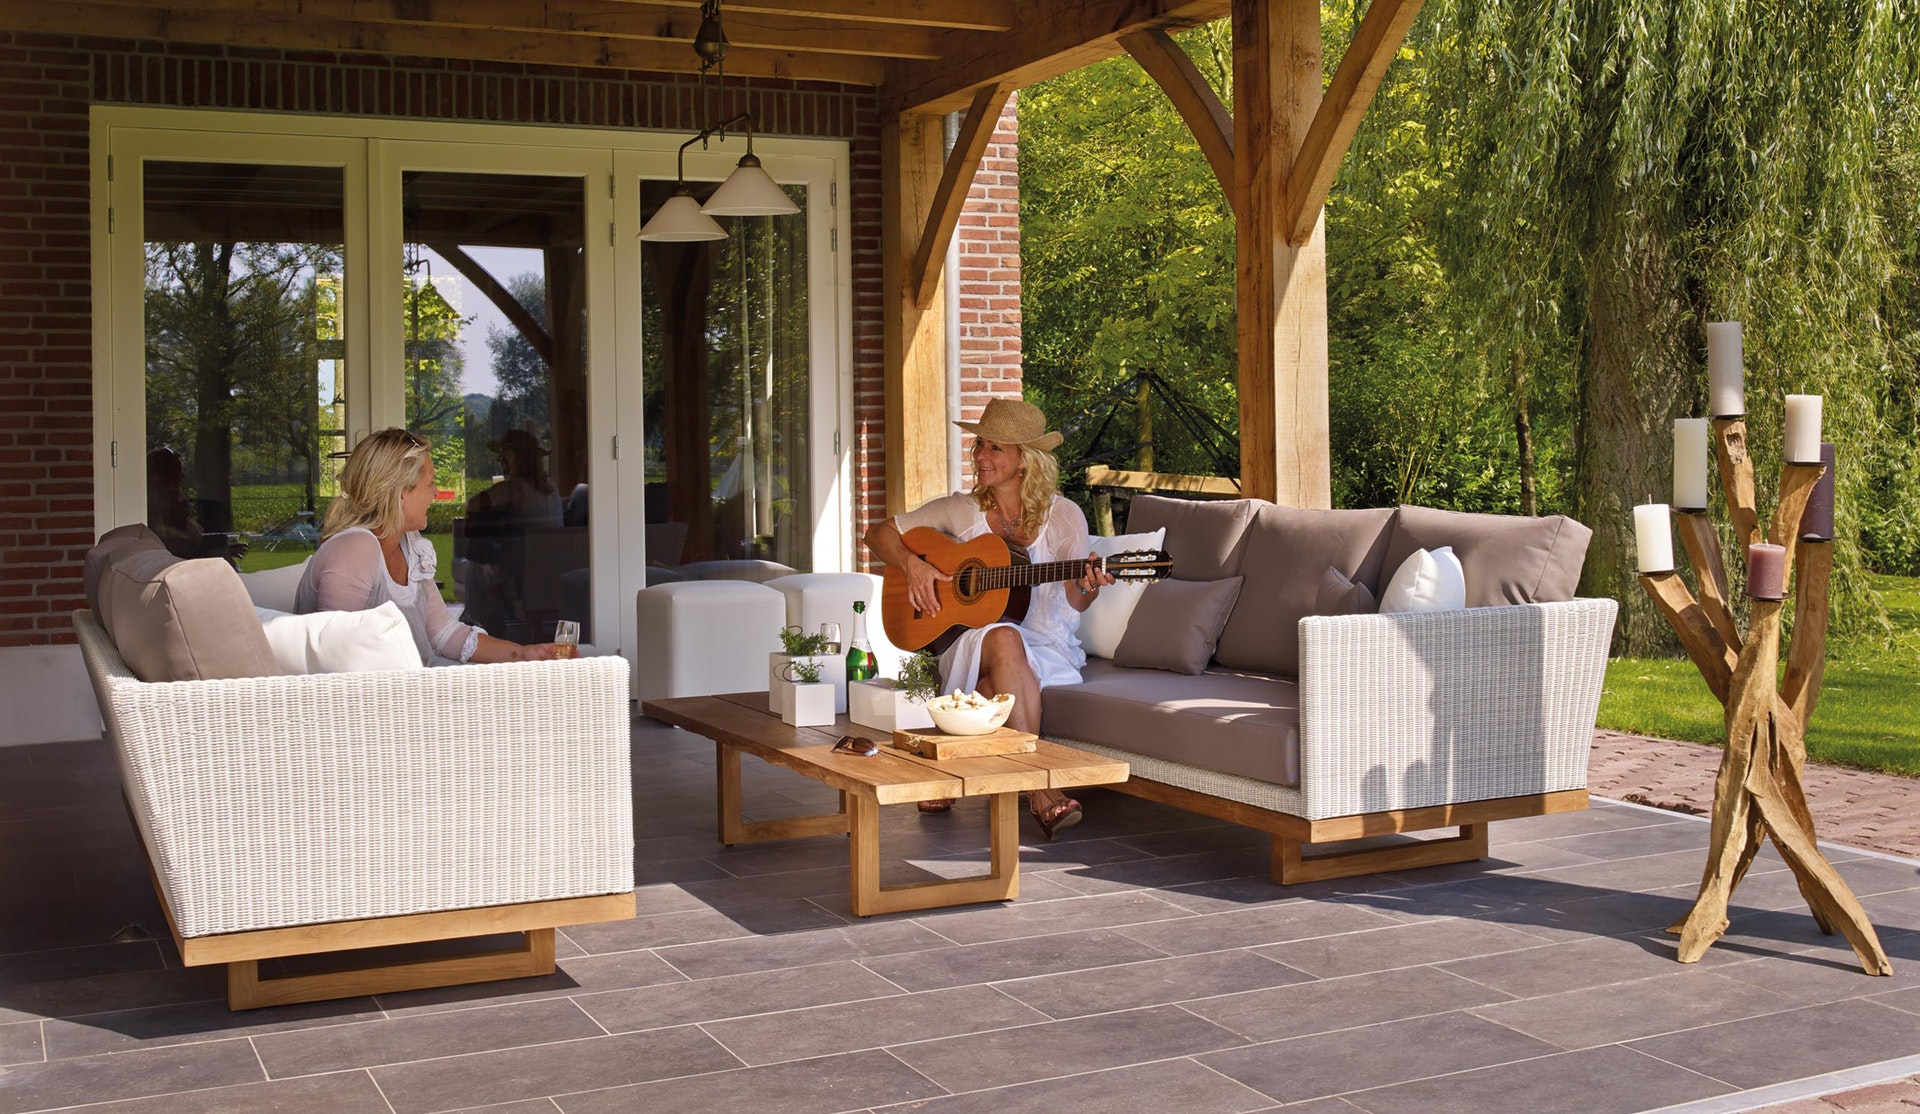 image of two ladies conversing in a beautiful outdoor living spaces patio